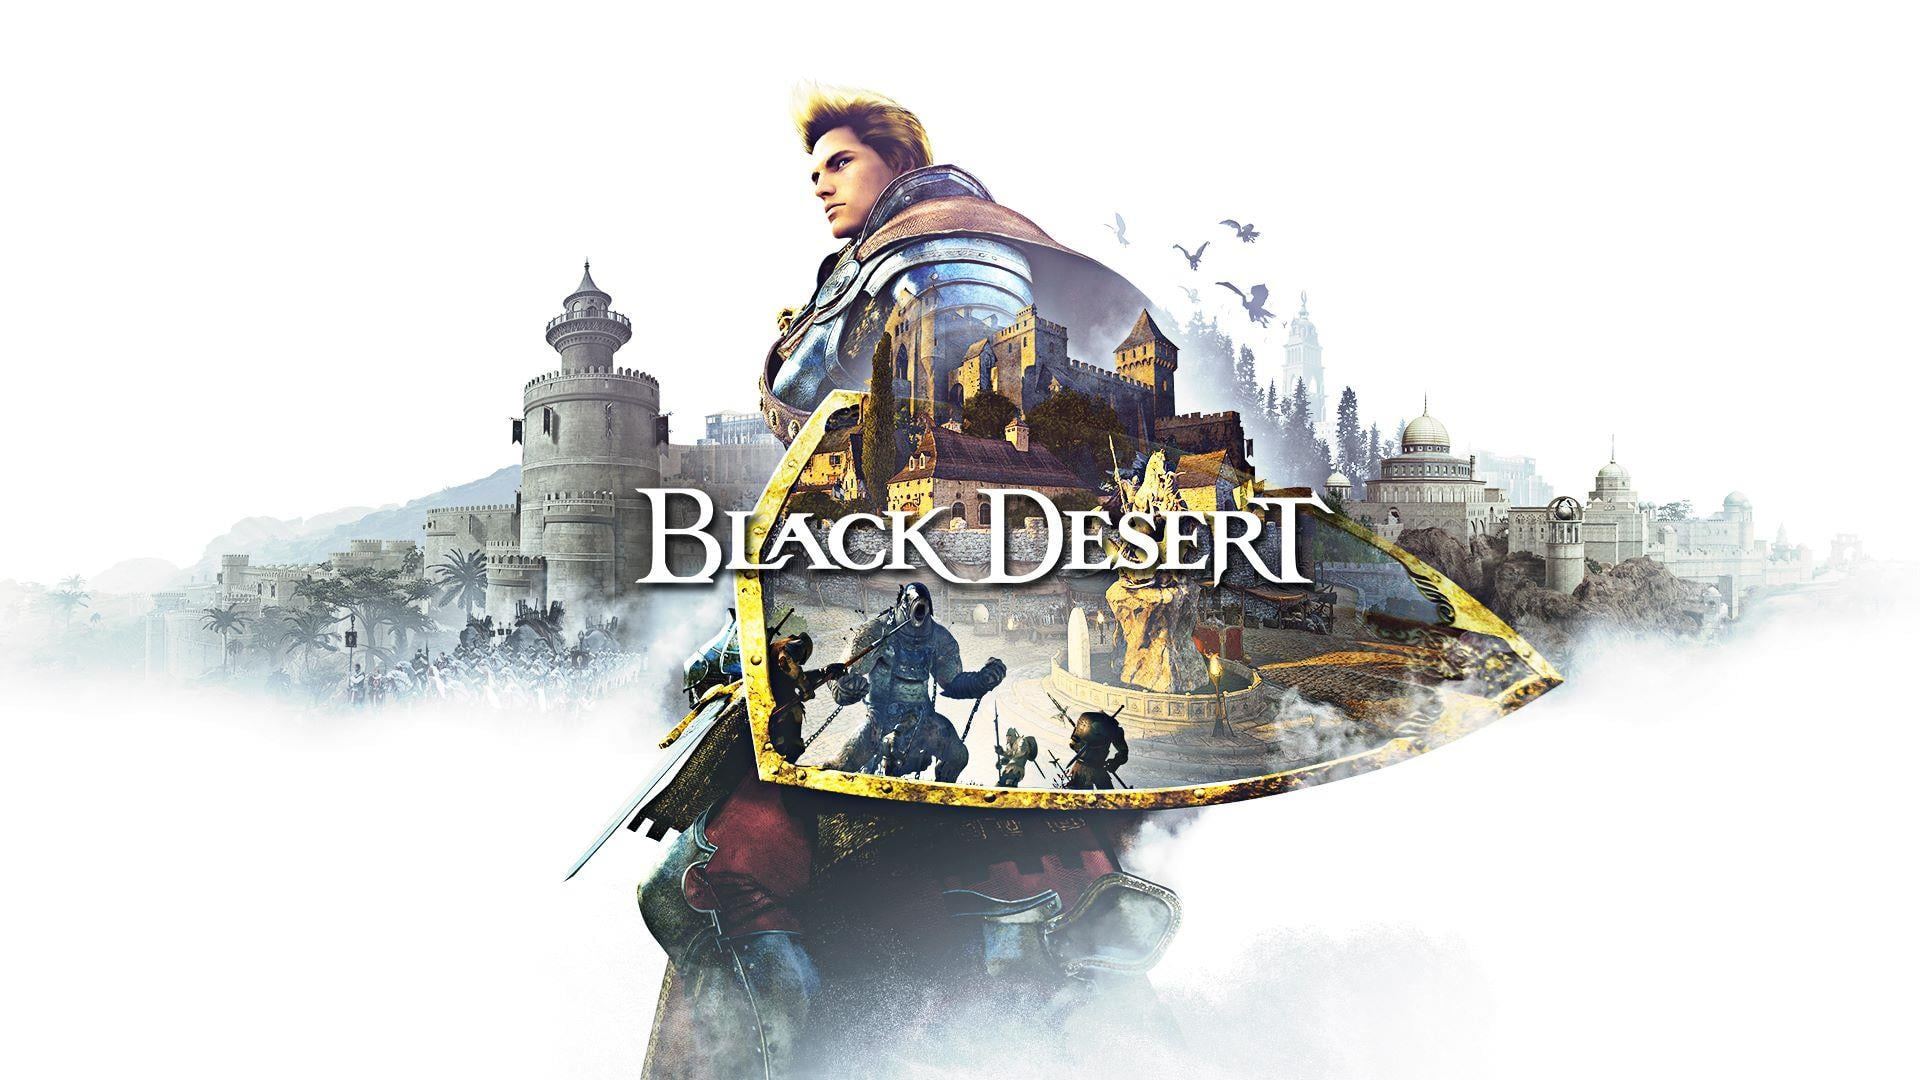 Black Desert Achievement List Revealed